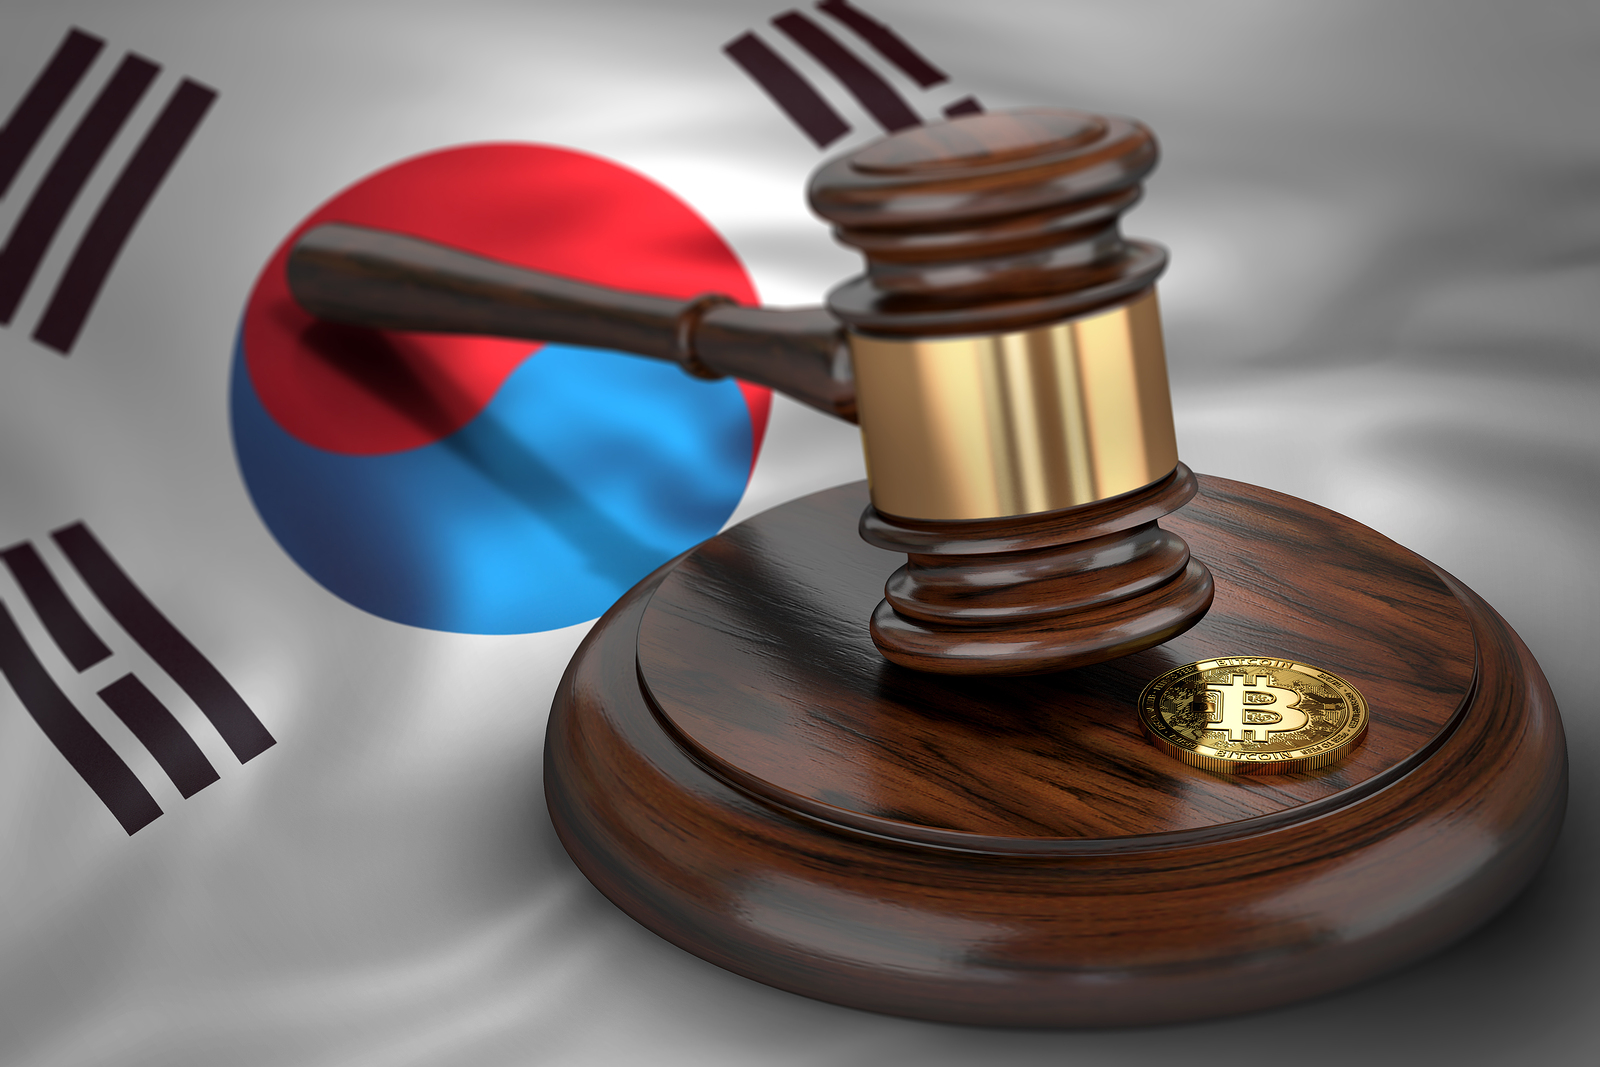 Survey shows South Koreans support crypto tax law